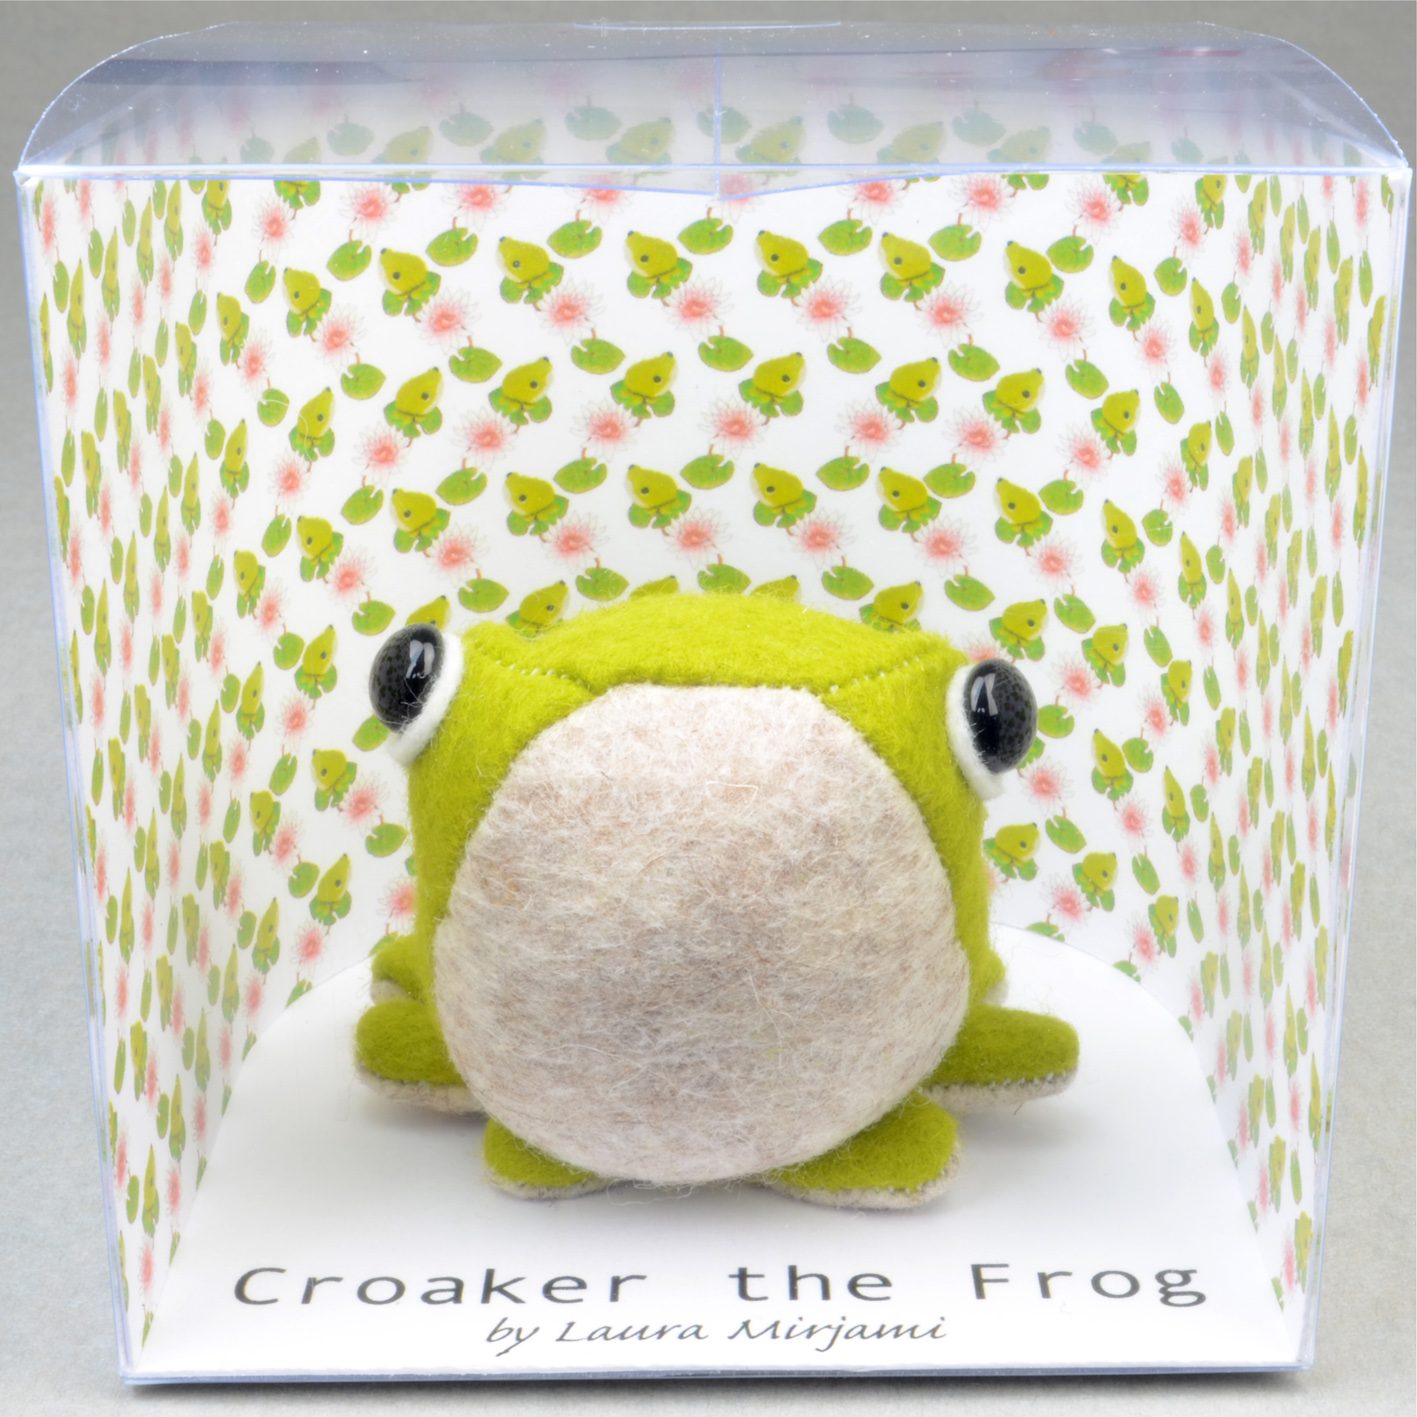 Handmade felt Croaker the Frog paperweight in a new packaging.